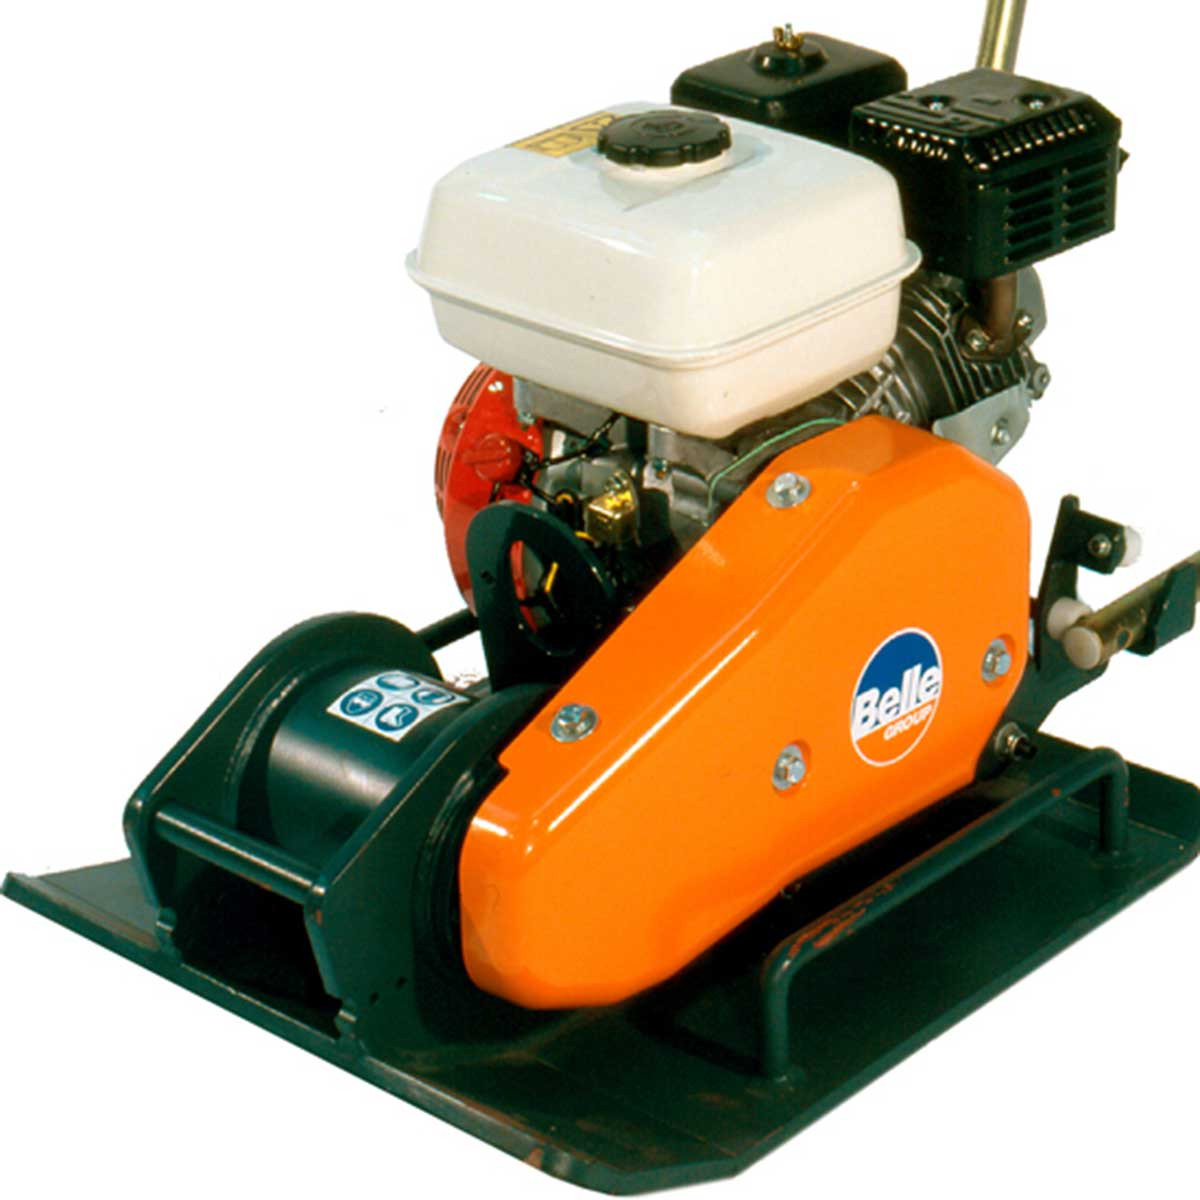 Altrad Belle plate compactor side